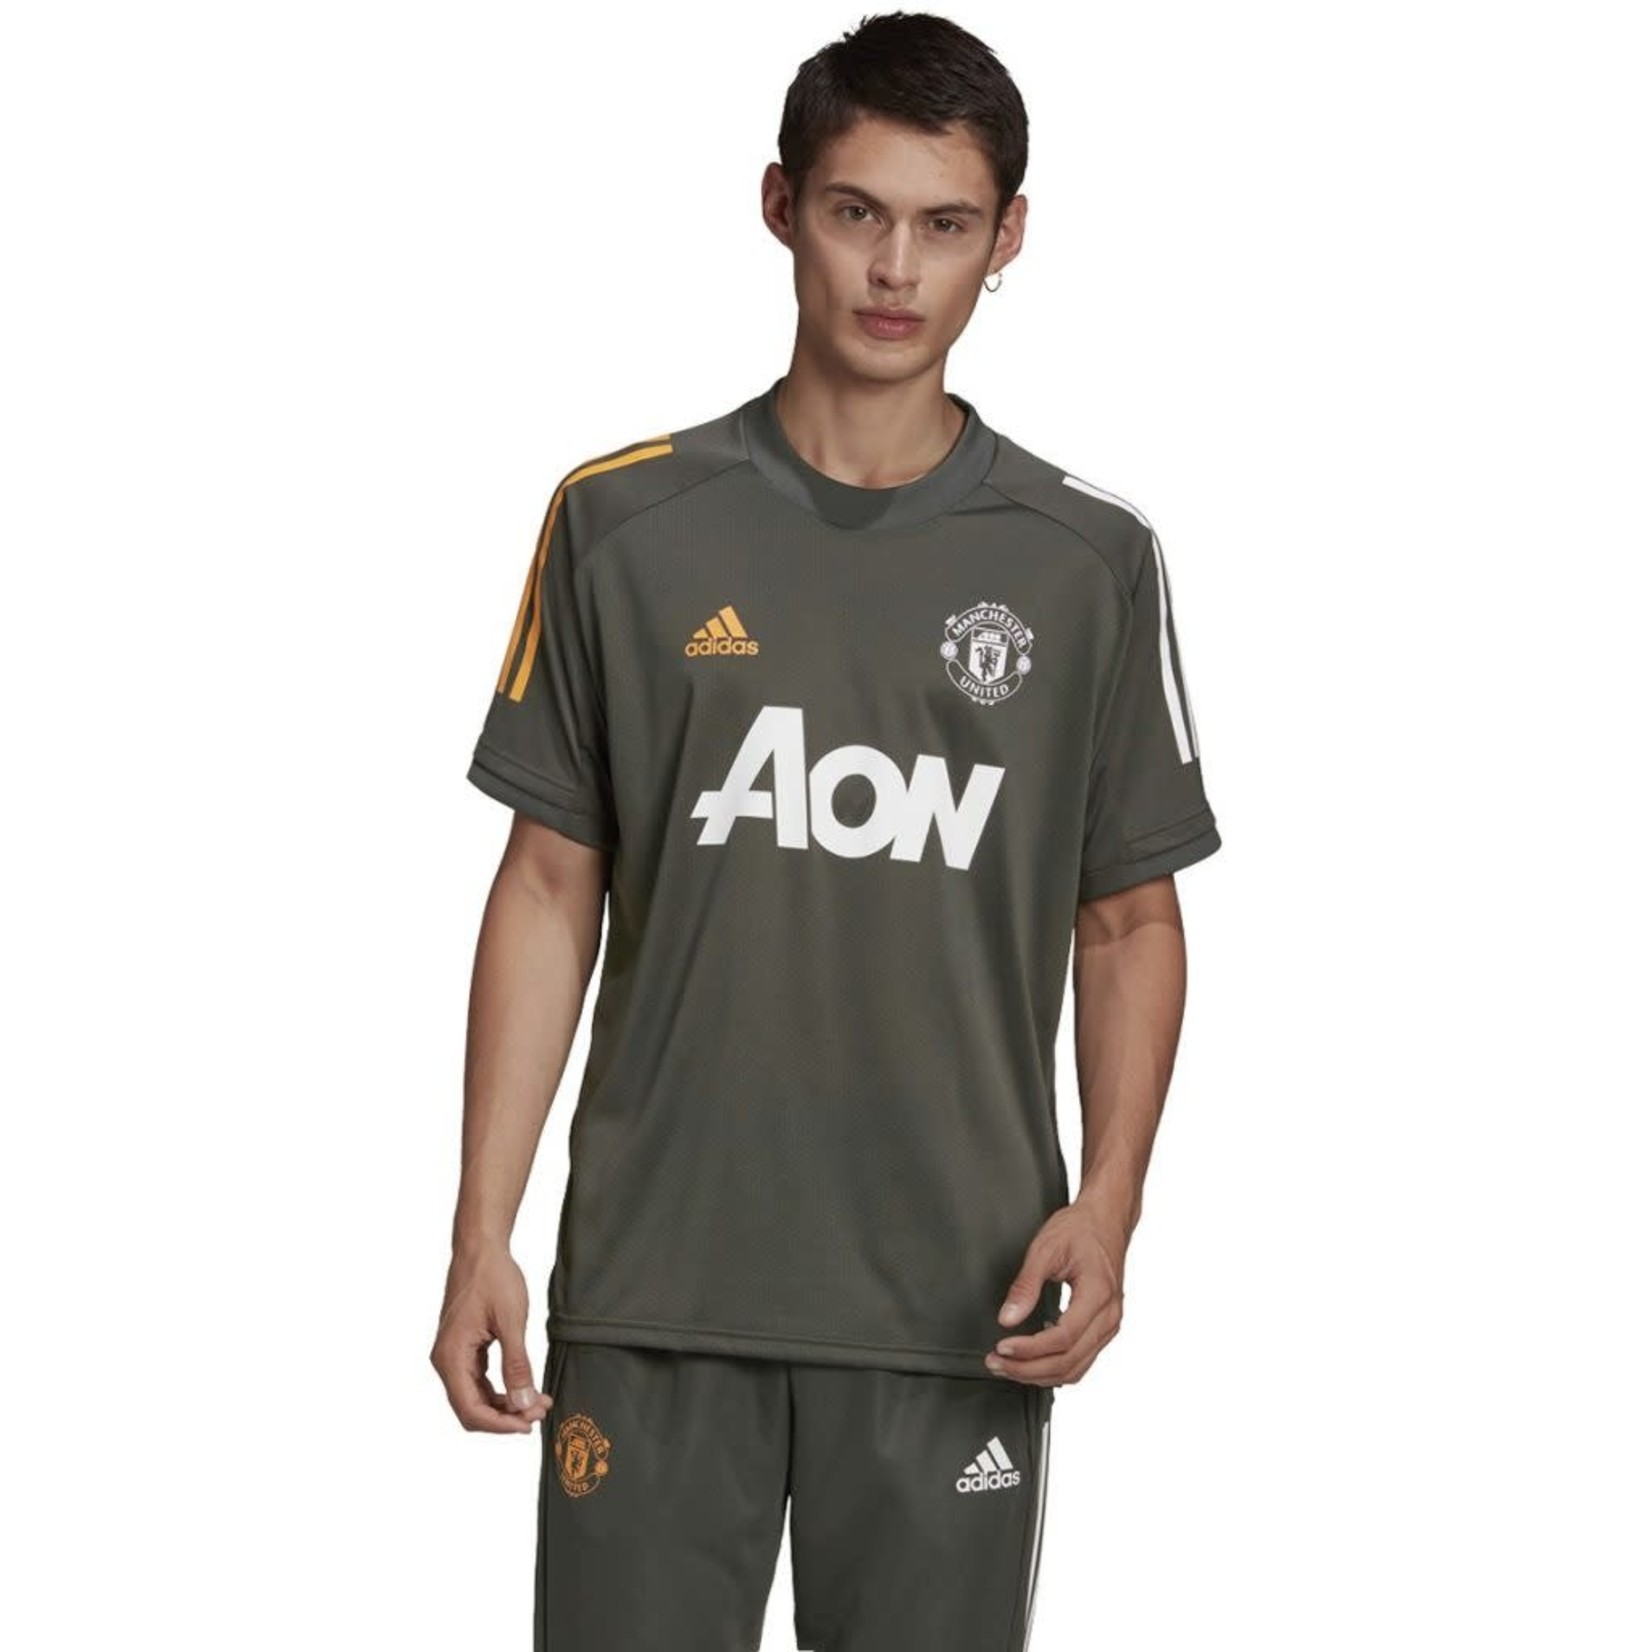 ADIDAS MANCHESTER UNITED 20/21 TRAINING JERSEY